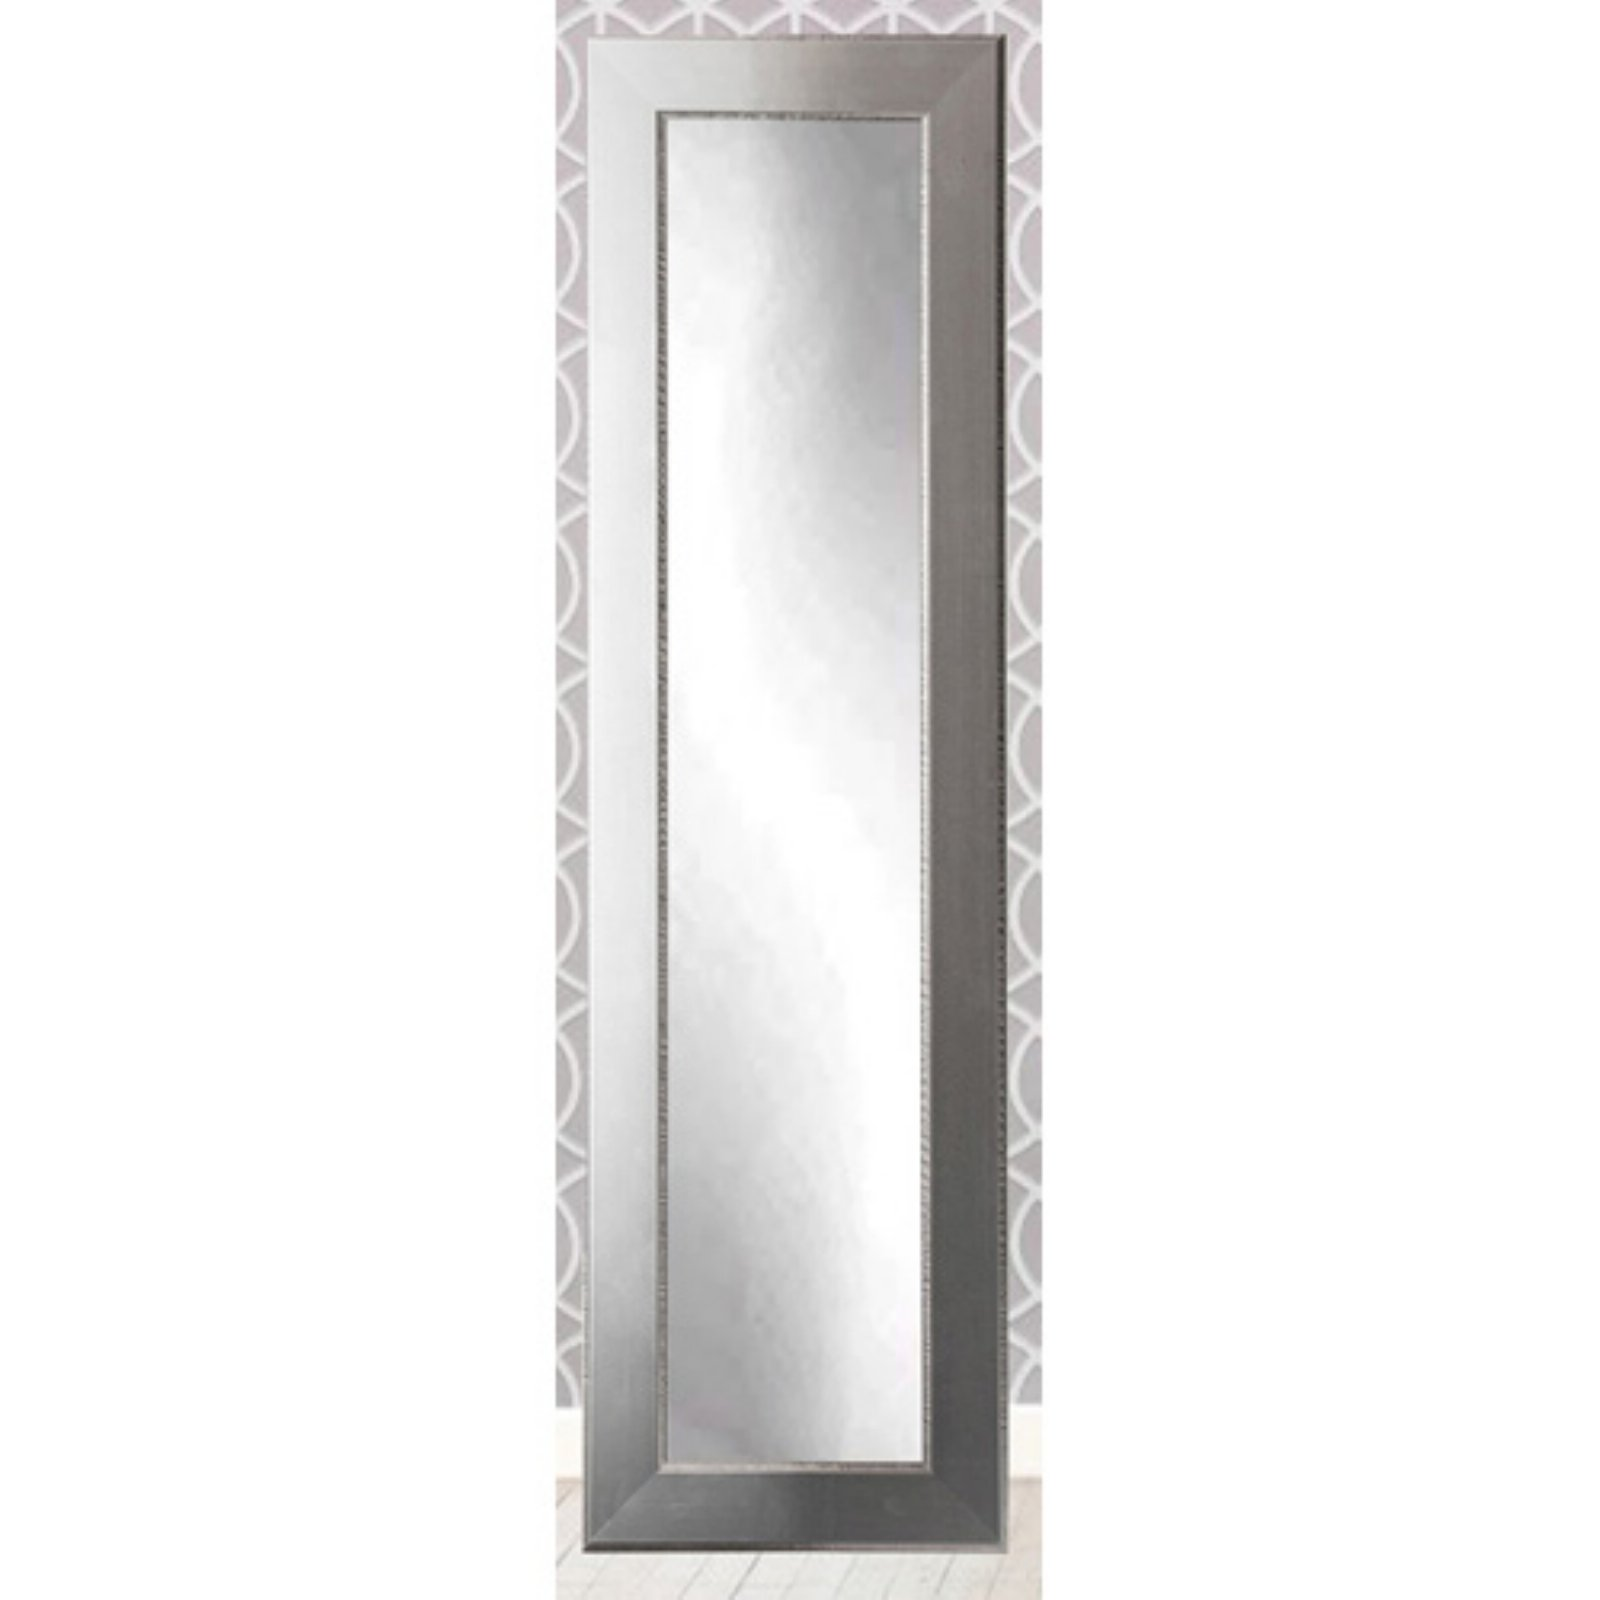 BrandtWorks Designers Choice Mod Euro Leaning Floor Mirror by BrandtWorks